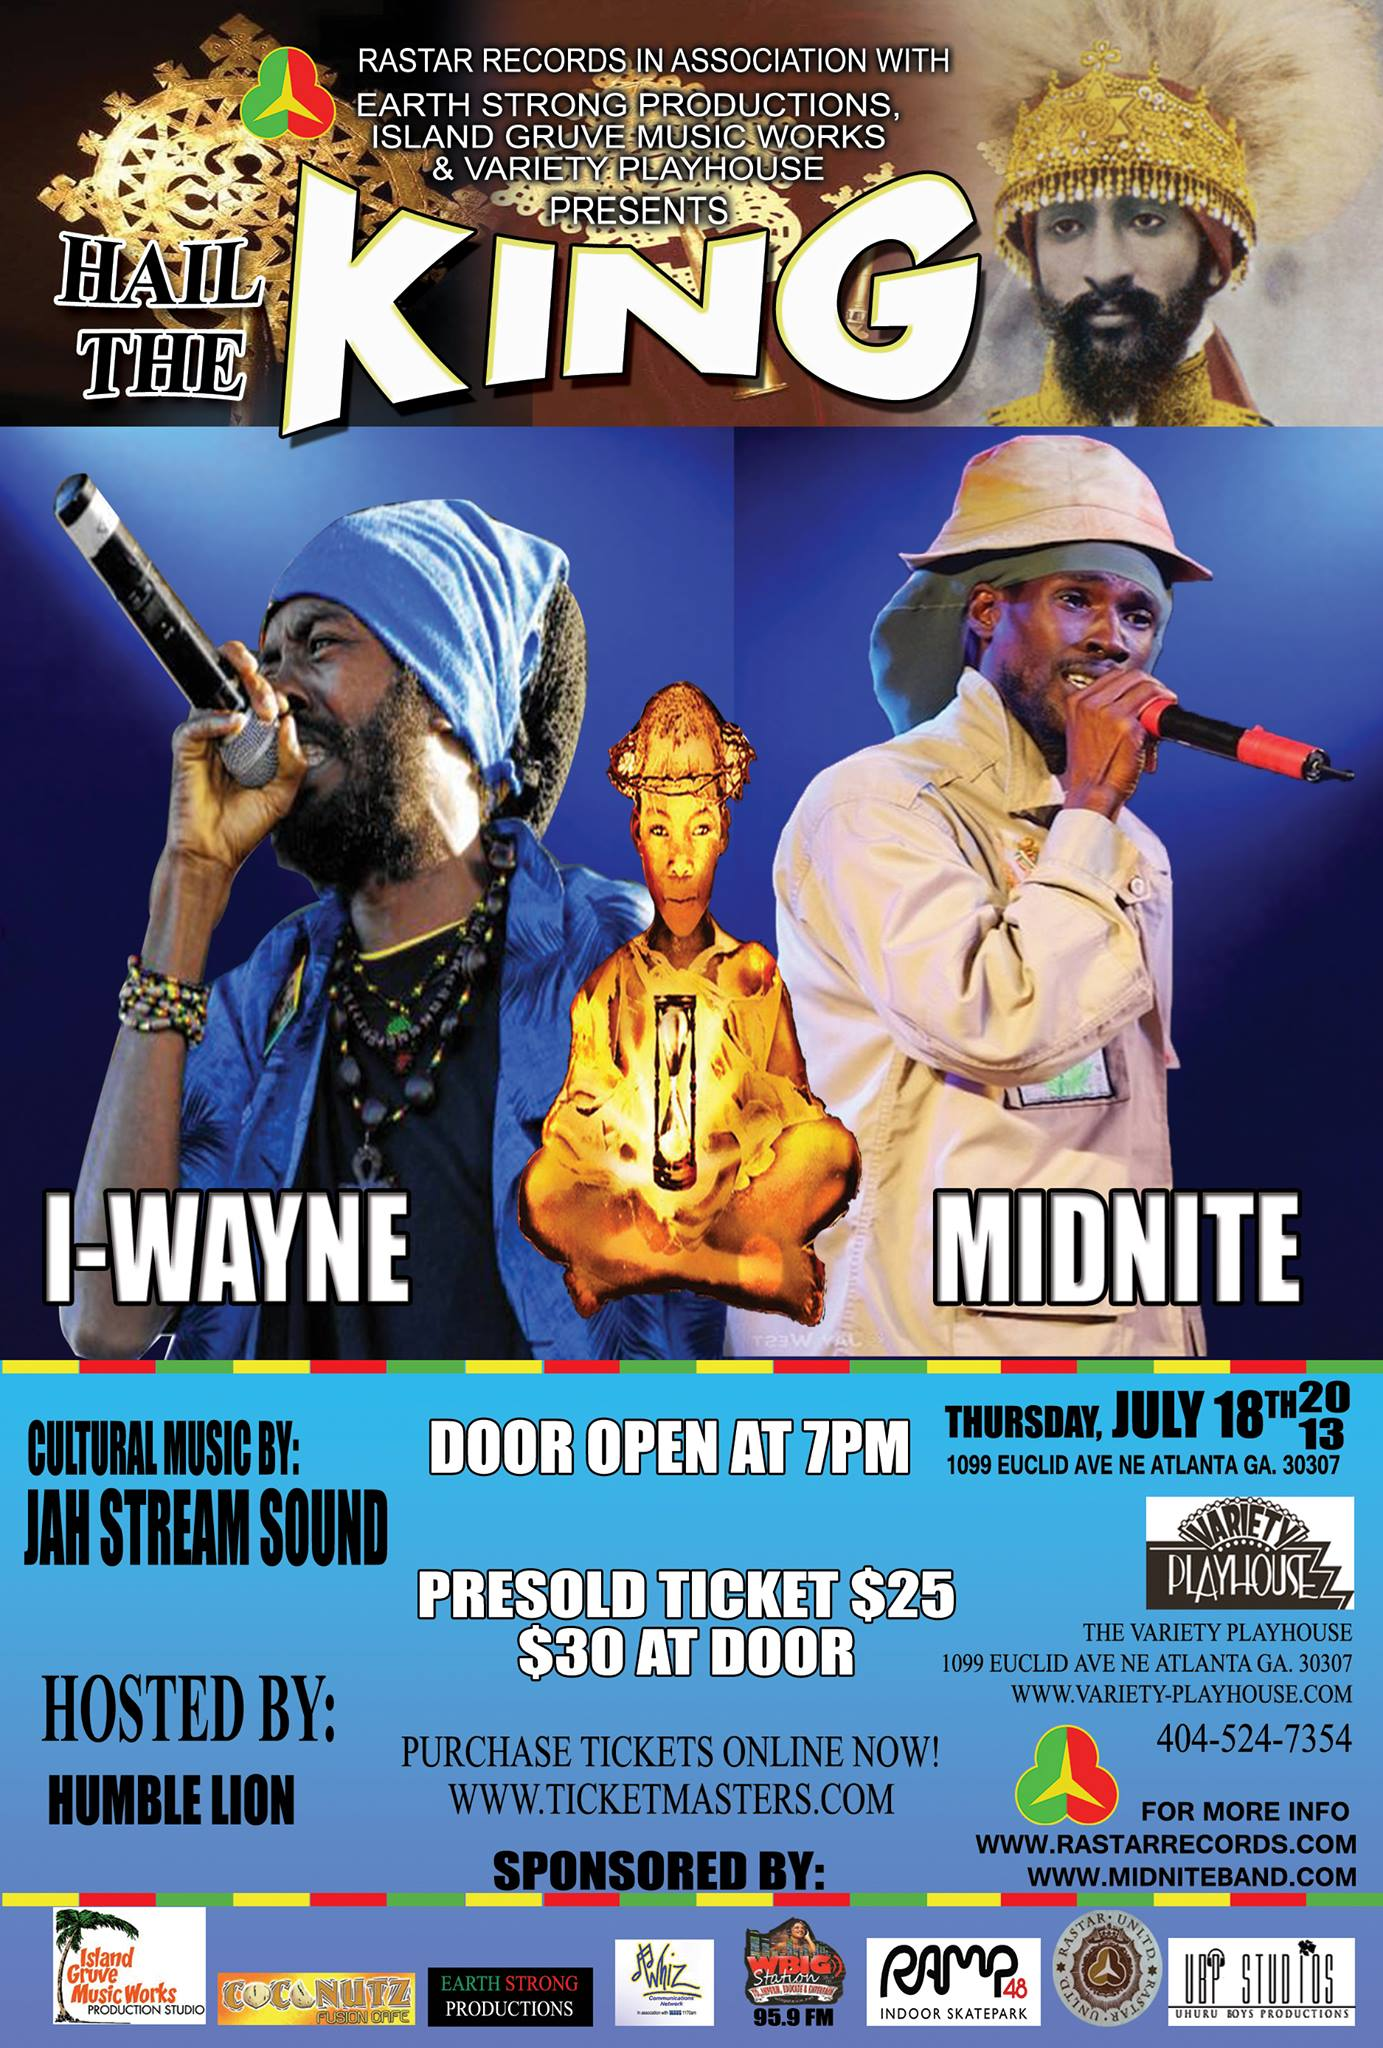 MIDNITE & I-WAYNE live on stage at the Hail the King night! (2 shows)